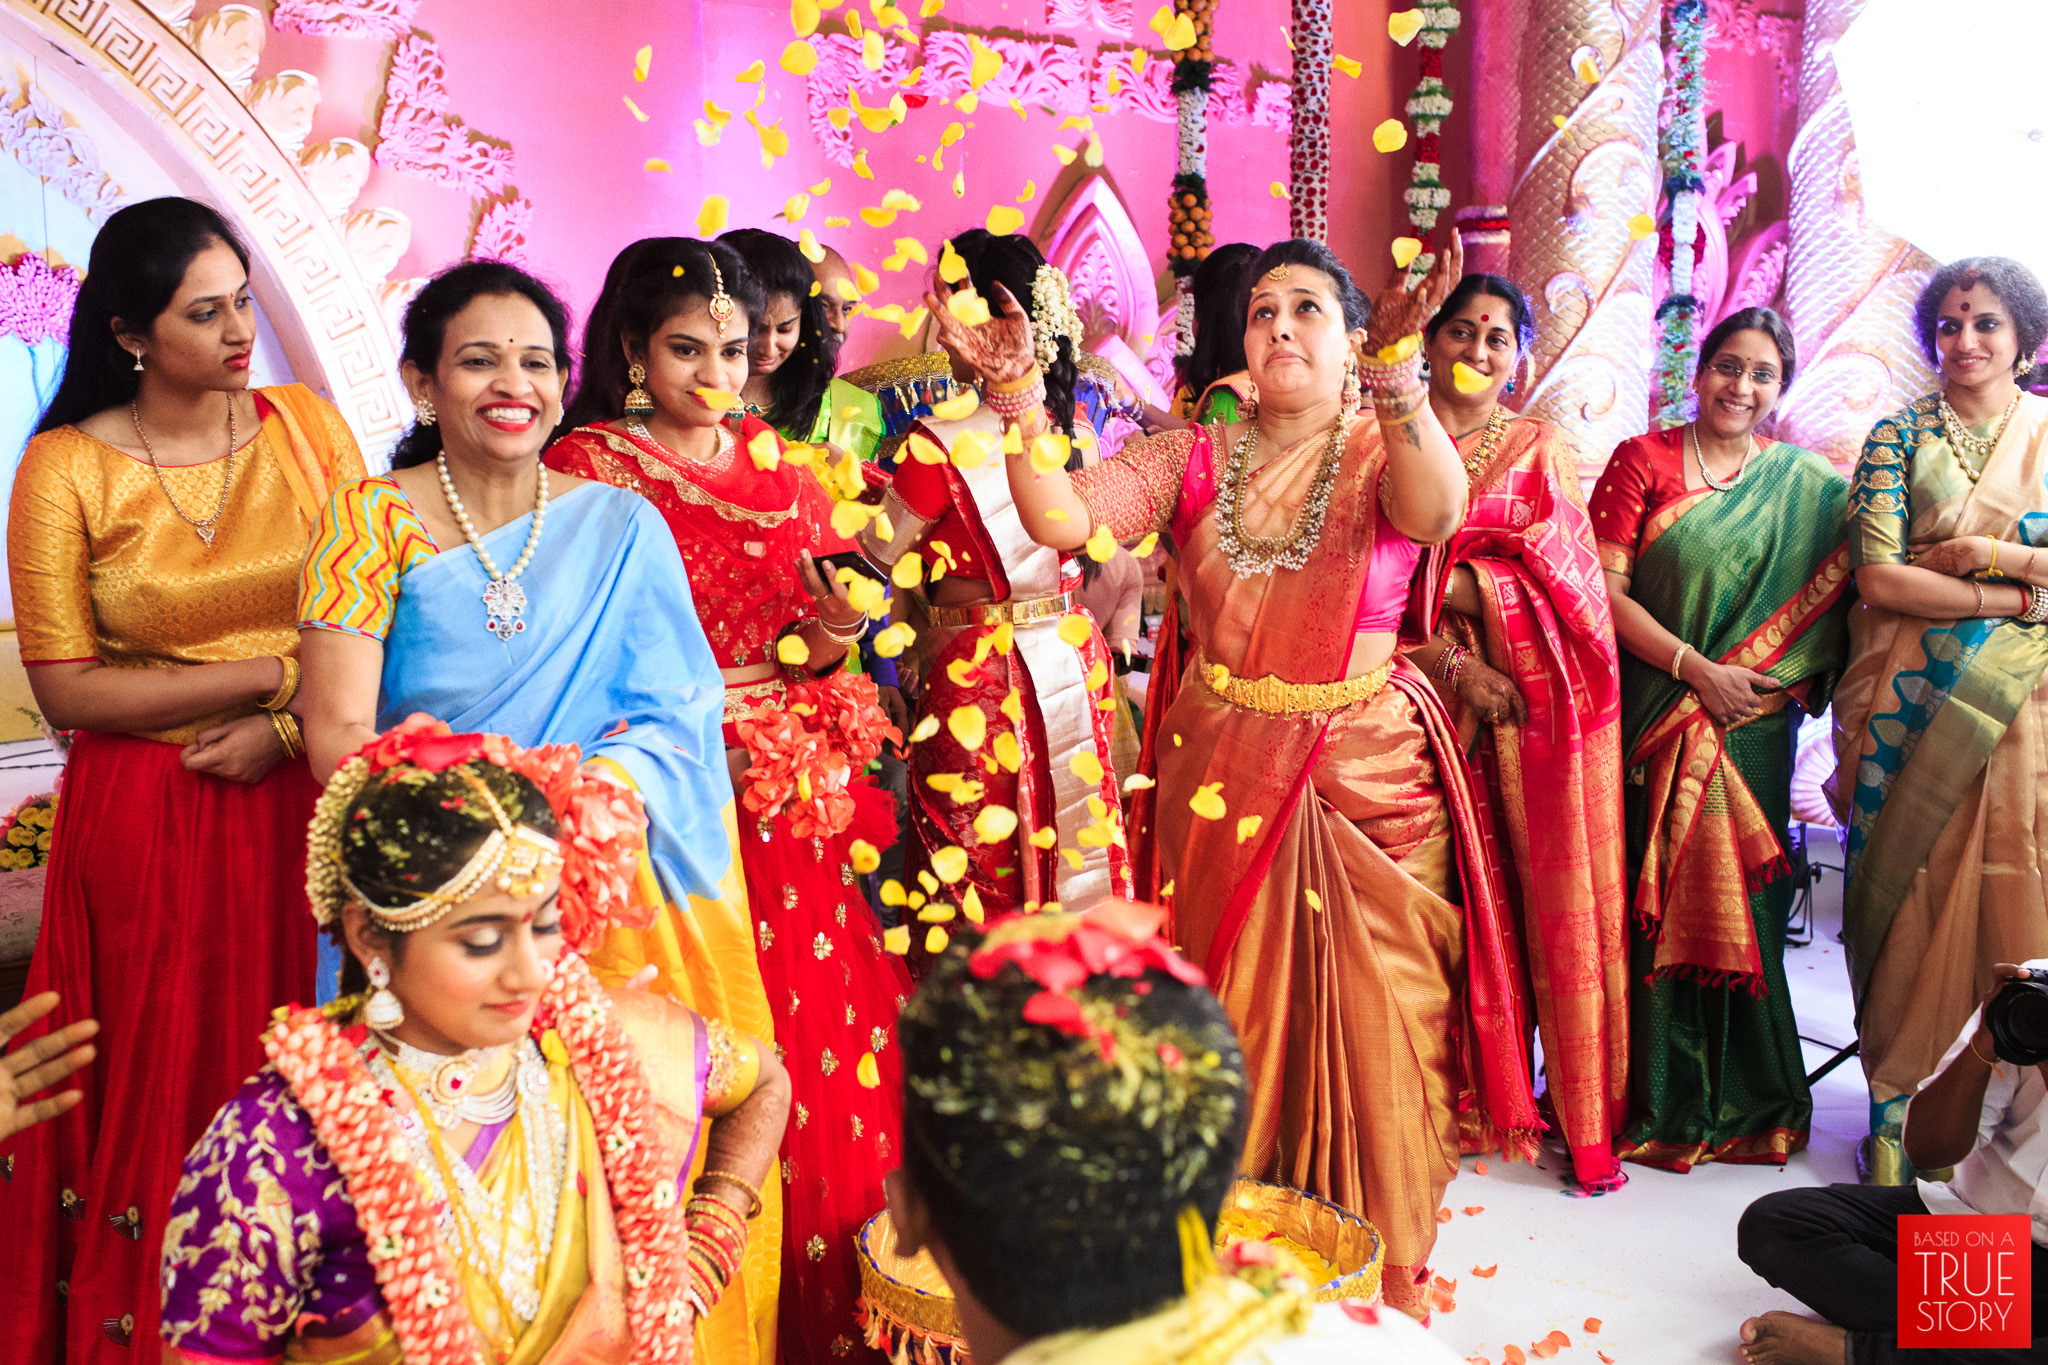 Candid-Wedding-Photography-Hyderabad-0080.jpg